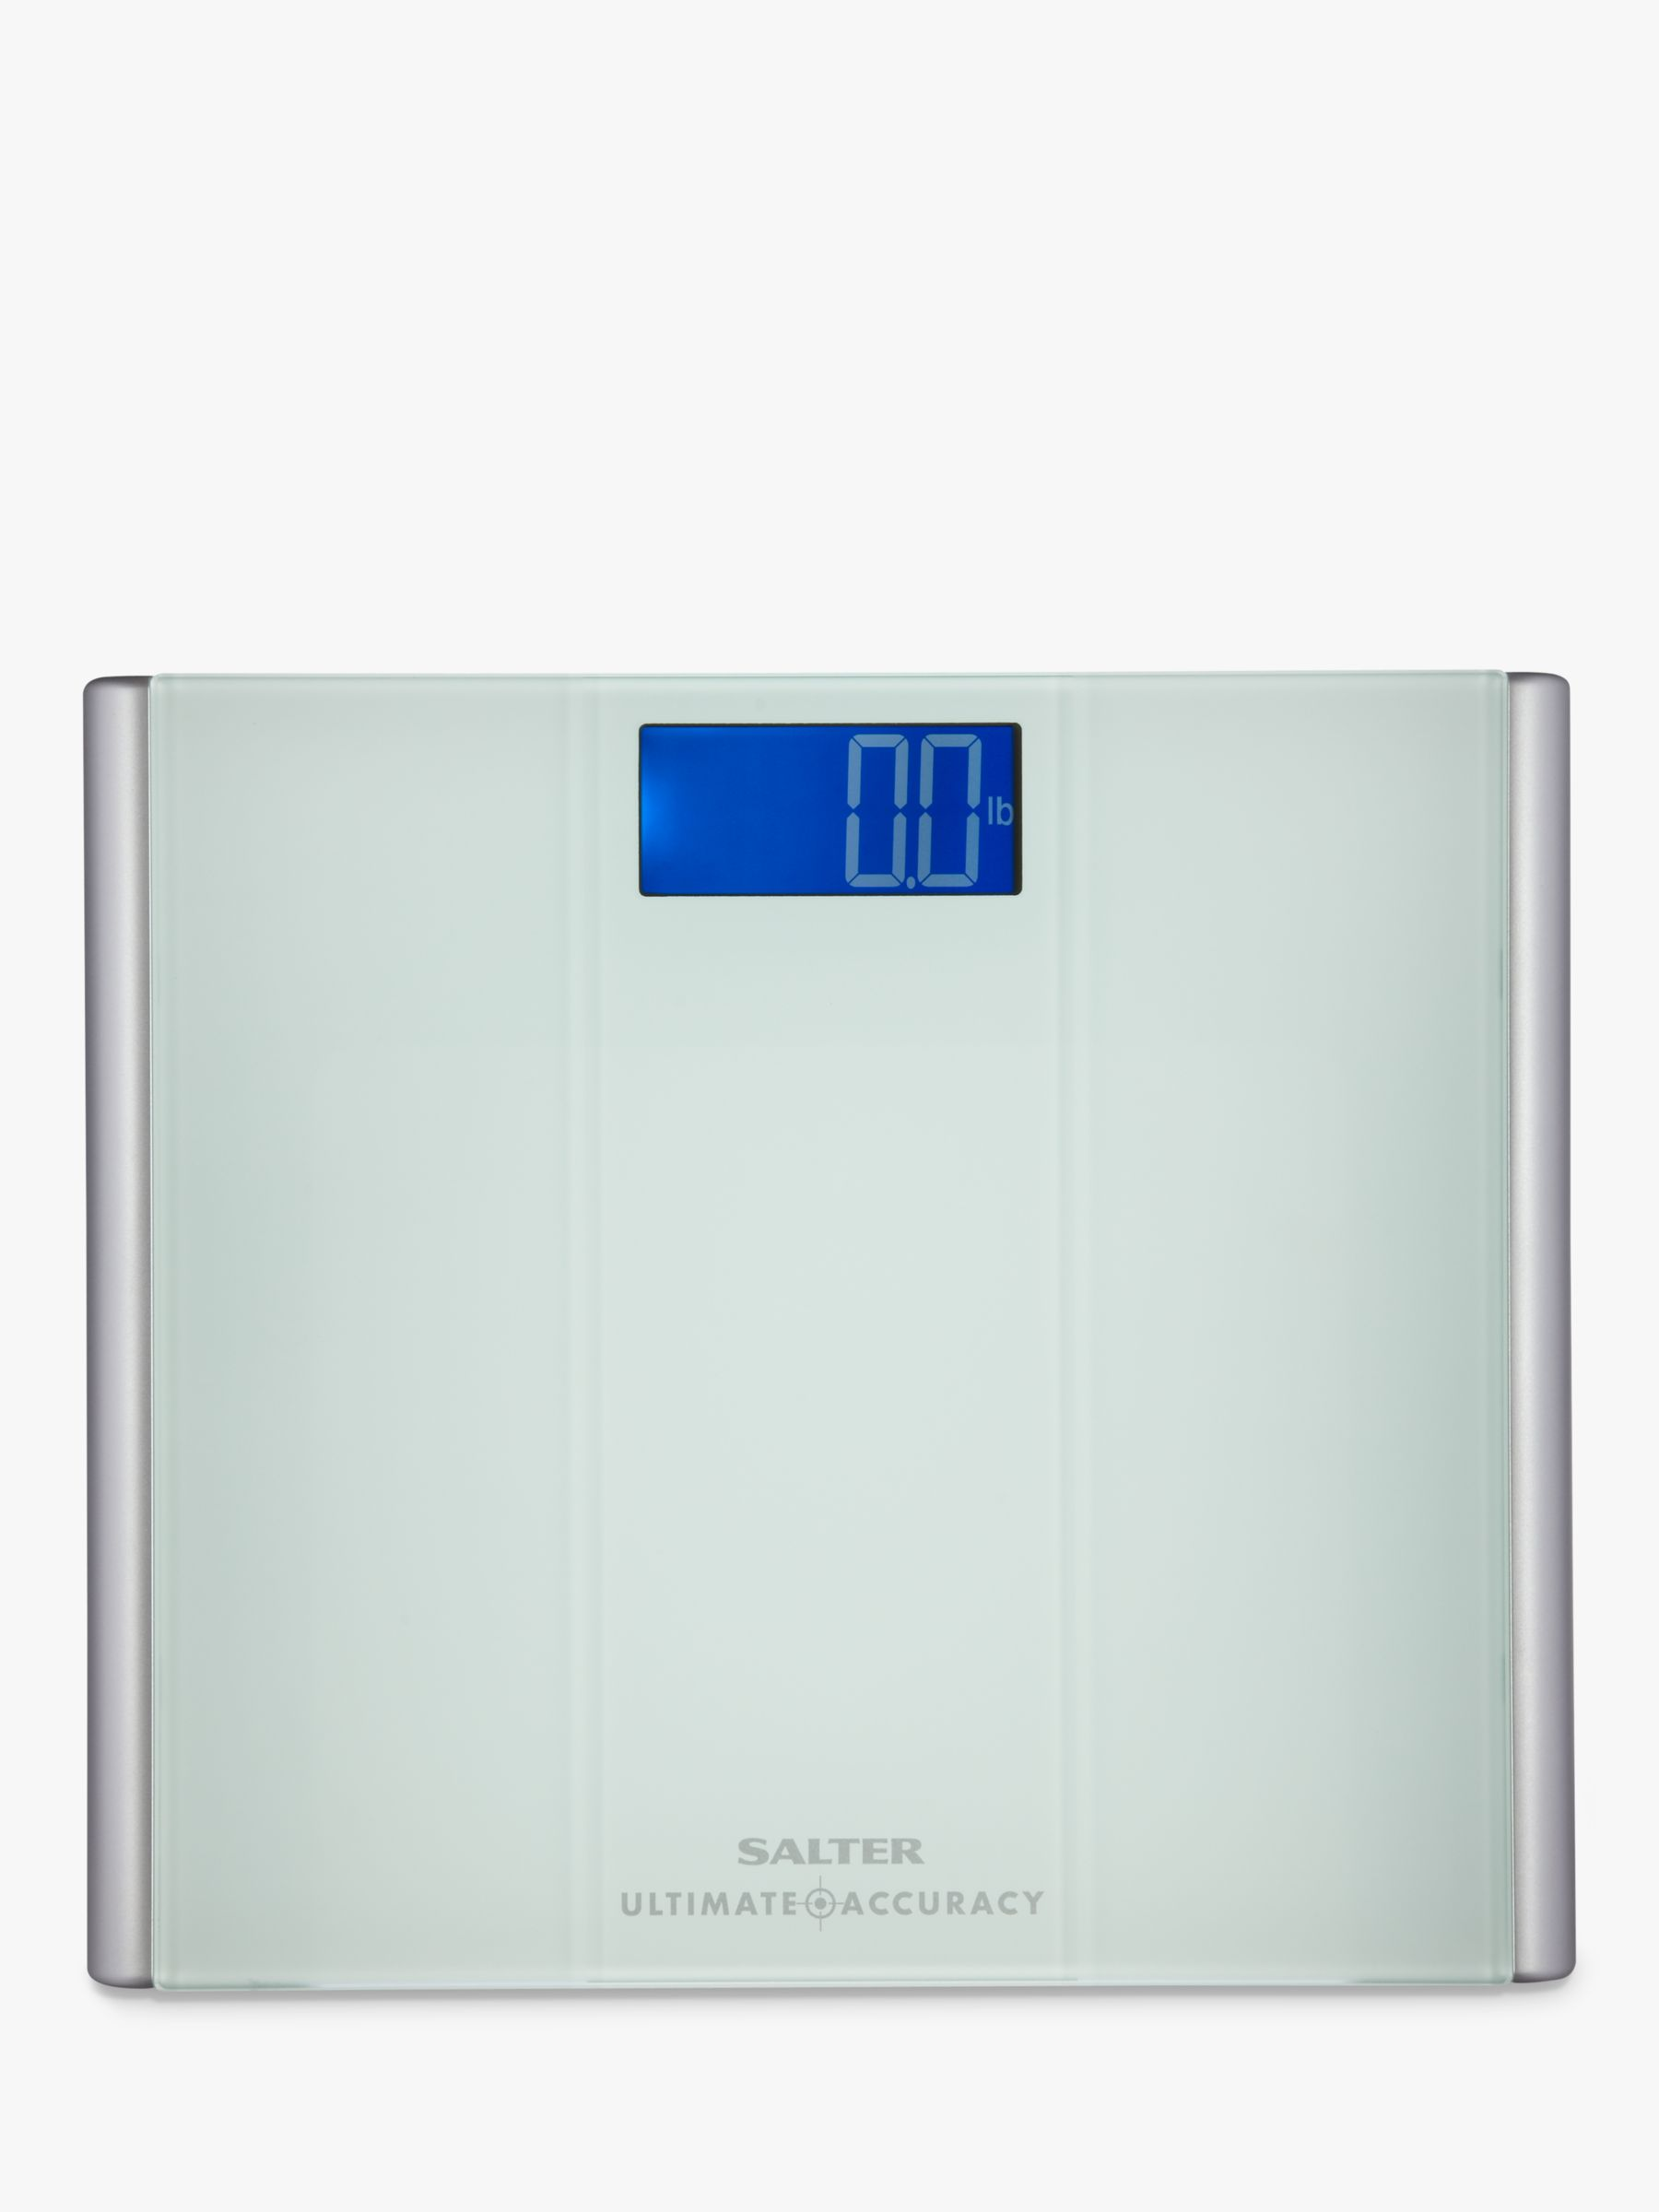 Salter Salter Ultimate Accuracy Digital Bathroom Scale, Glass